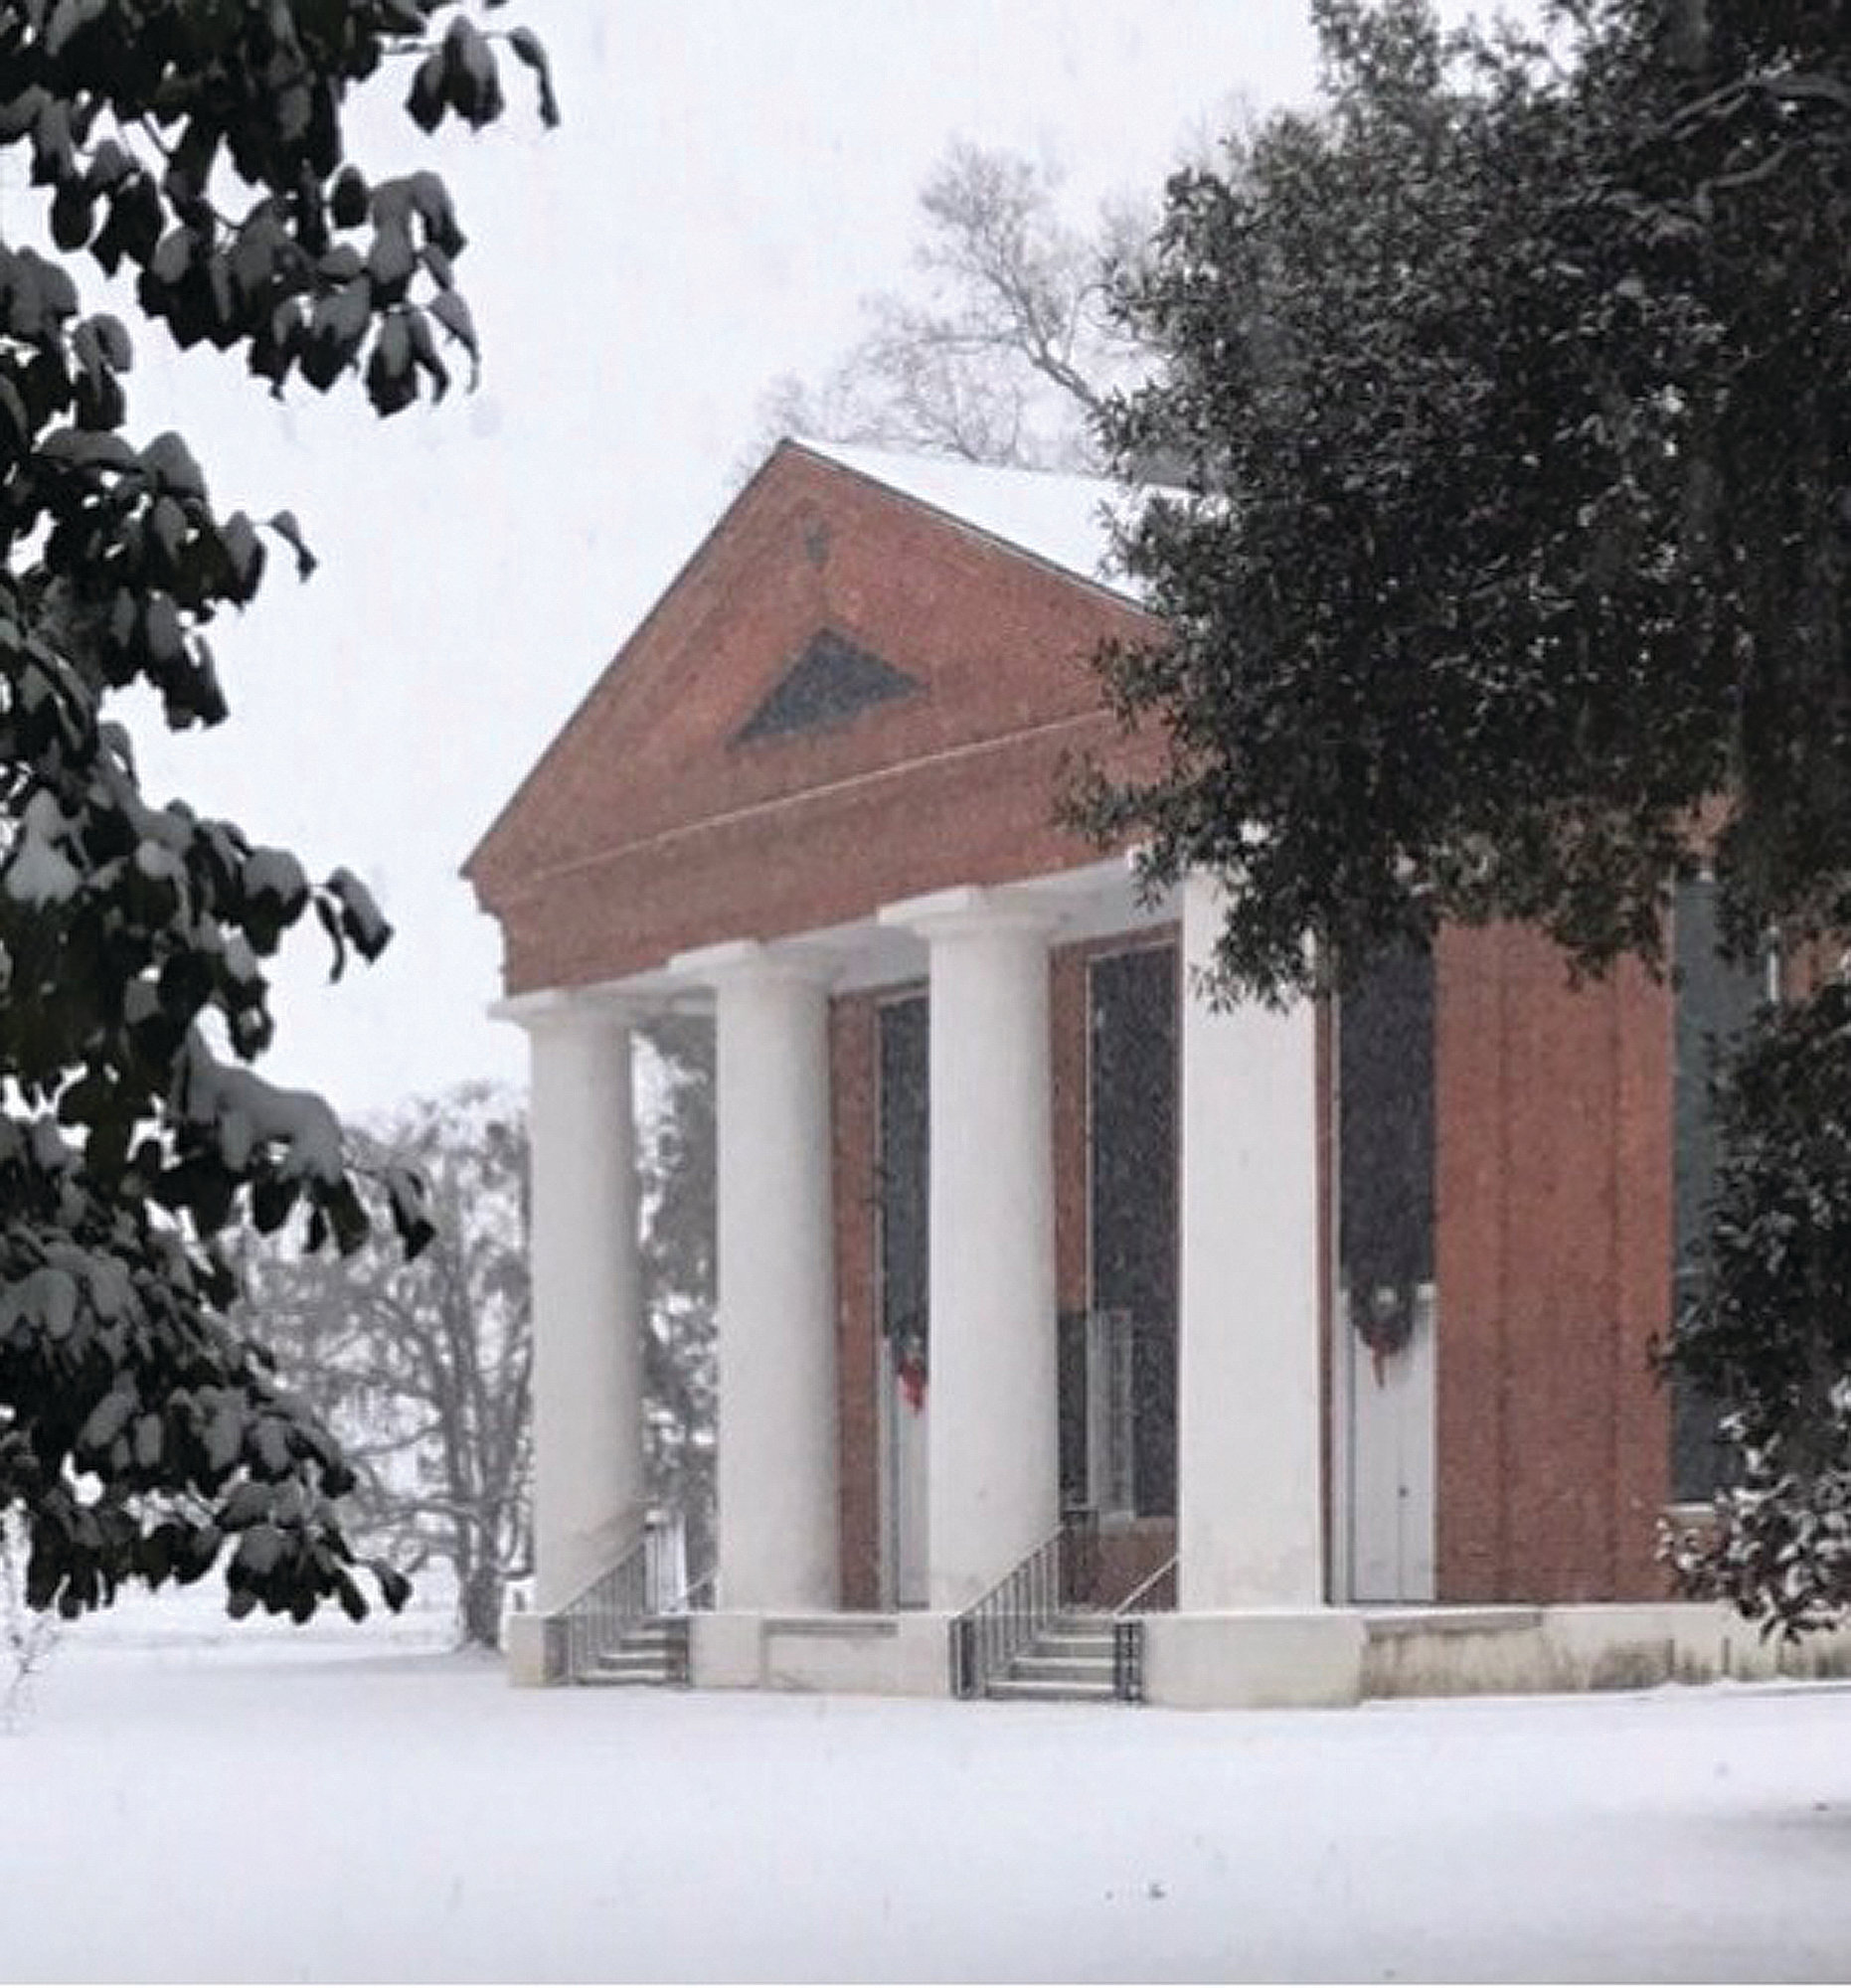 PHOTO PROVIDEDThe congregation of Salem Black River Presbyterian Church invites the public to its service of Lessons and Carols on Sunday, Dec. 16. The church, built in 1846 in the Greek Revival style, is on the National Historic Register. A reception in the Meeting House will follow the 3 p.m. service.